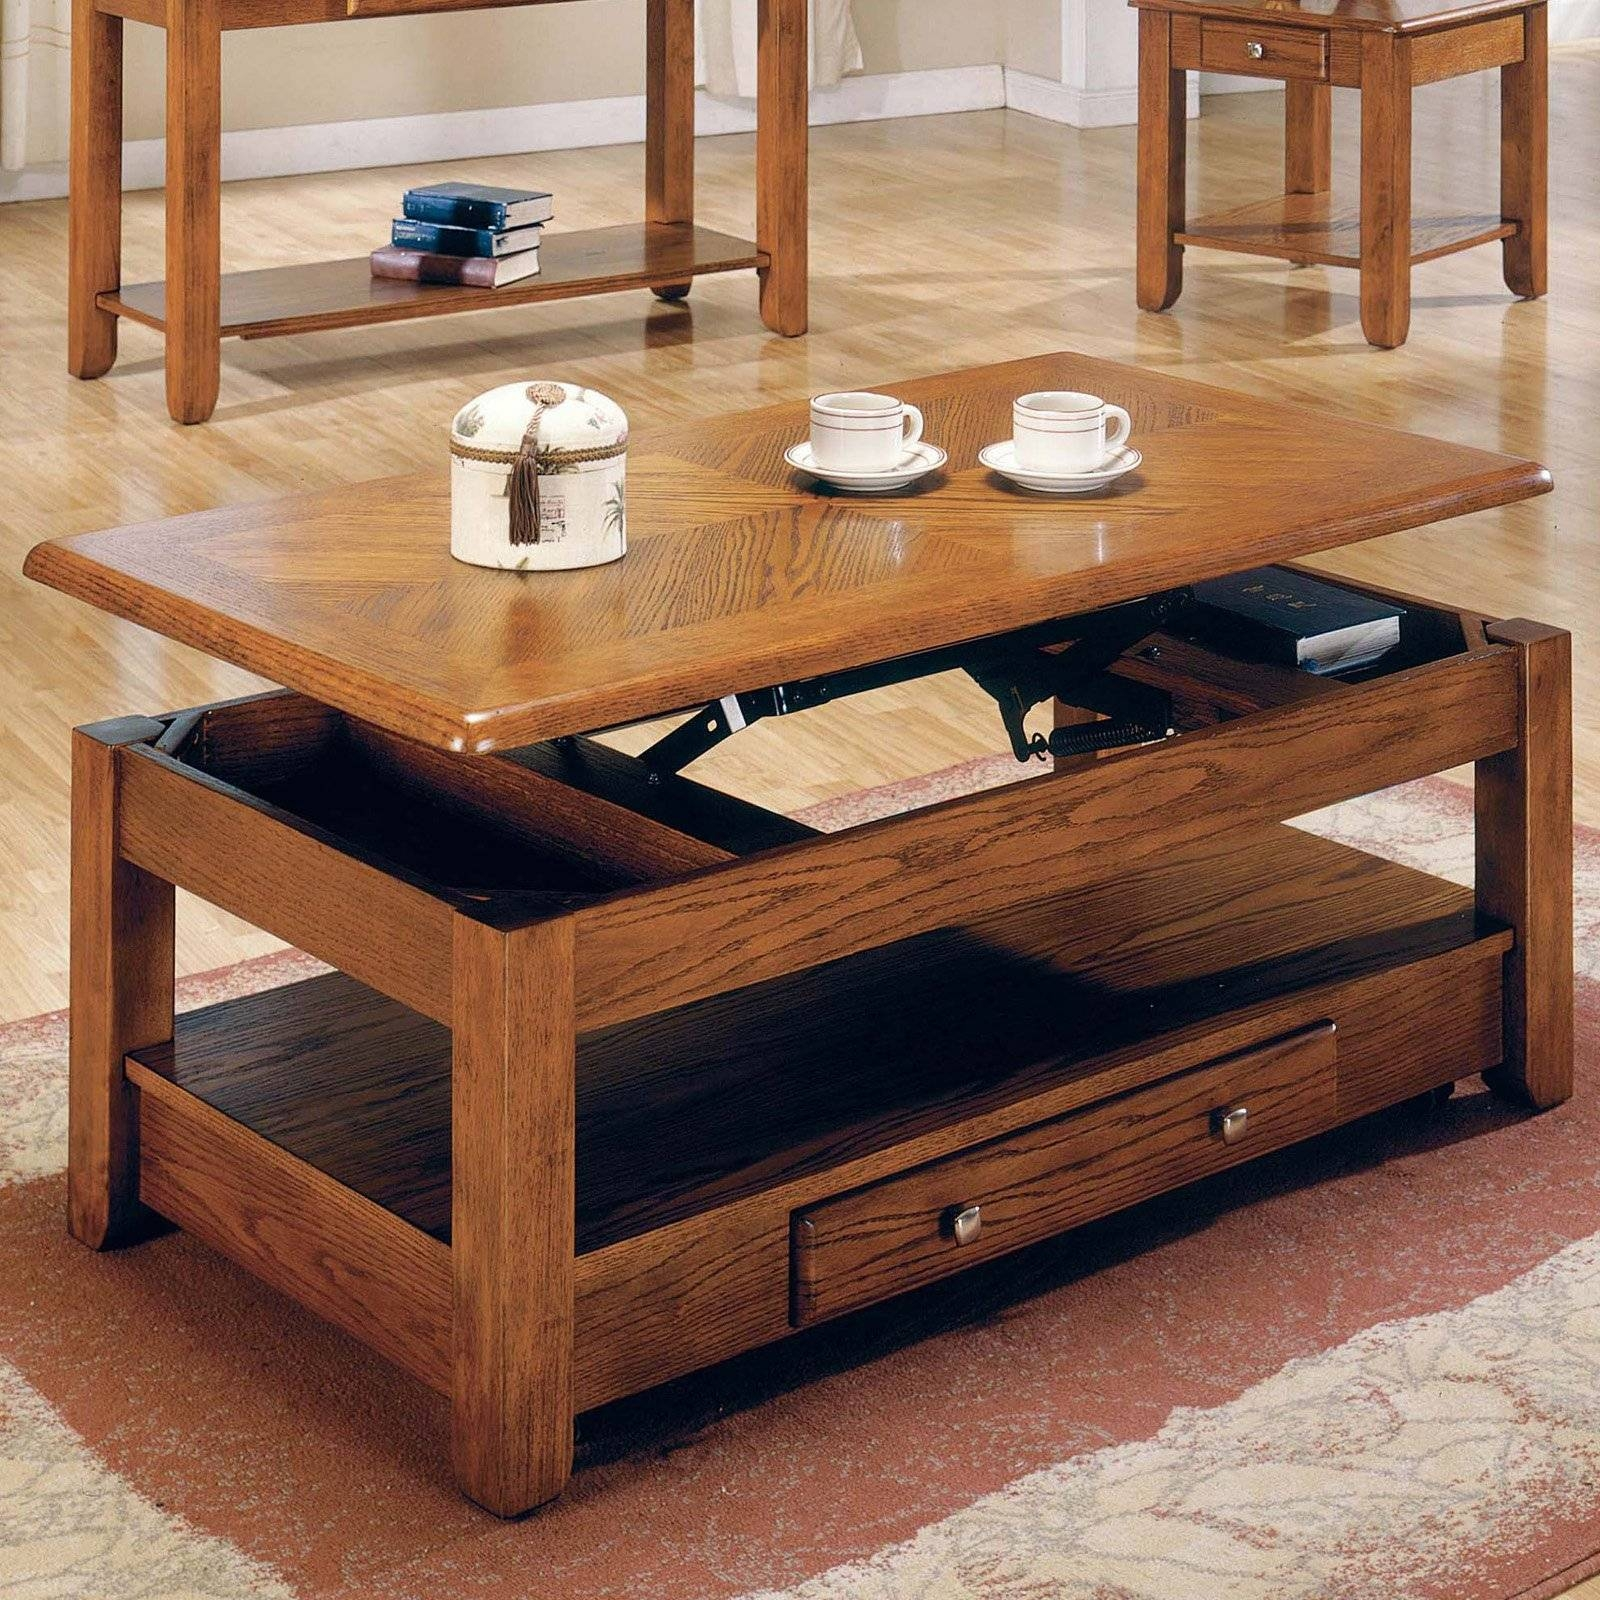 International Concepts Mission Solid Wood Lift Top Coffee Table in Coffee Tables Top Lifts Up (Image 13 of 30)